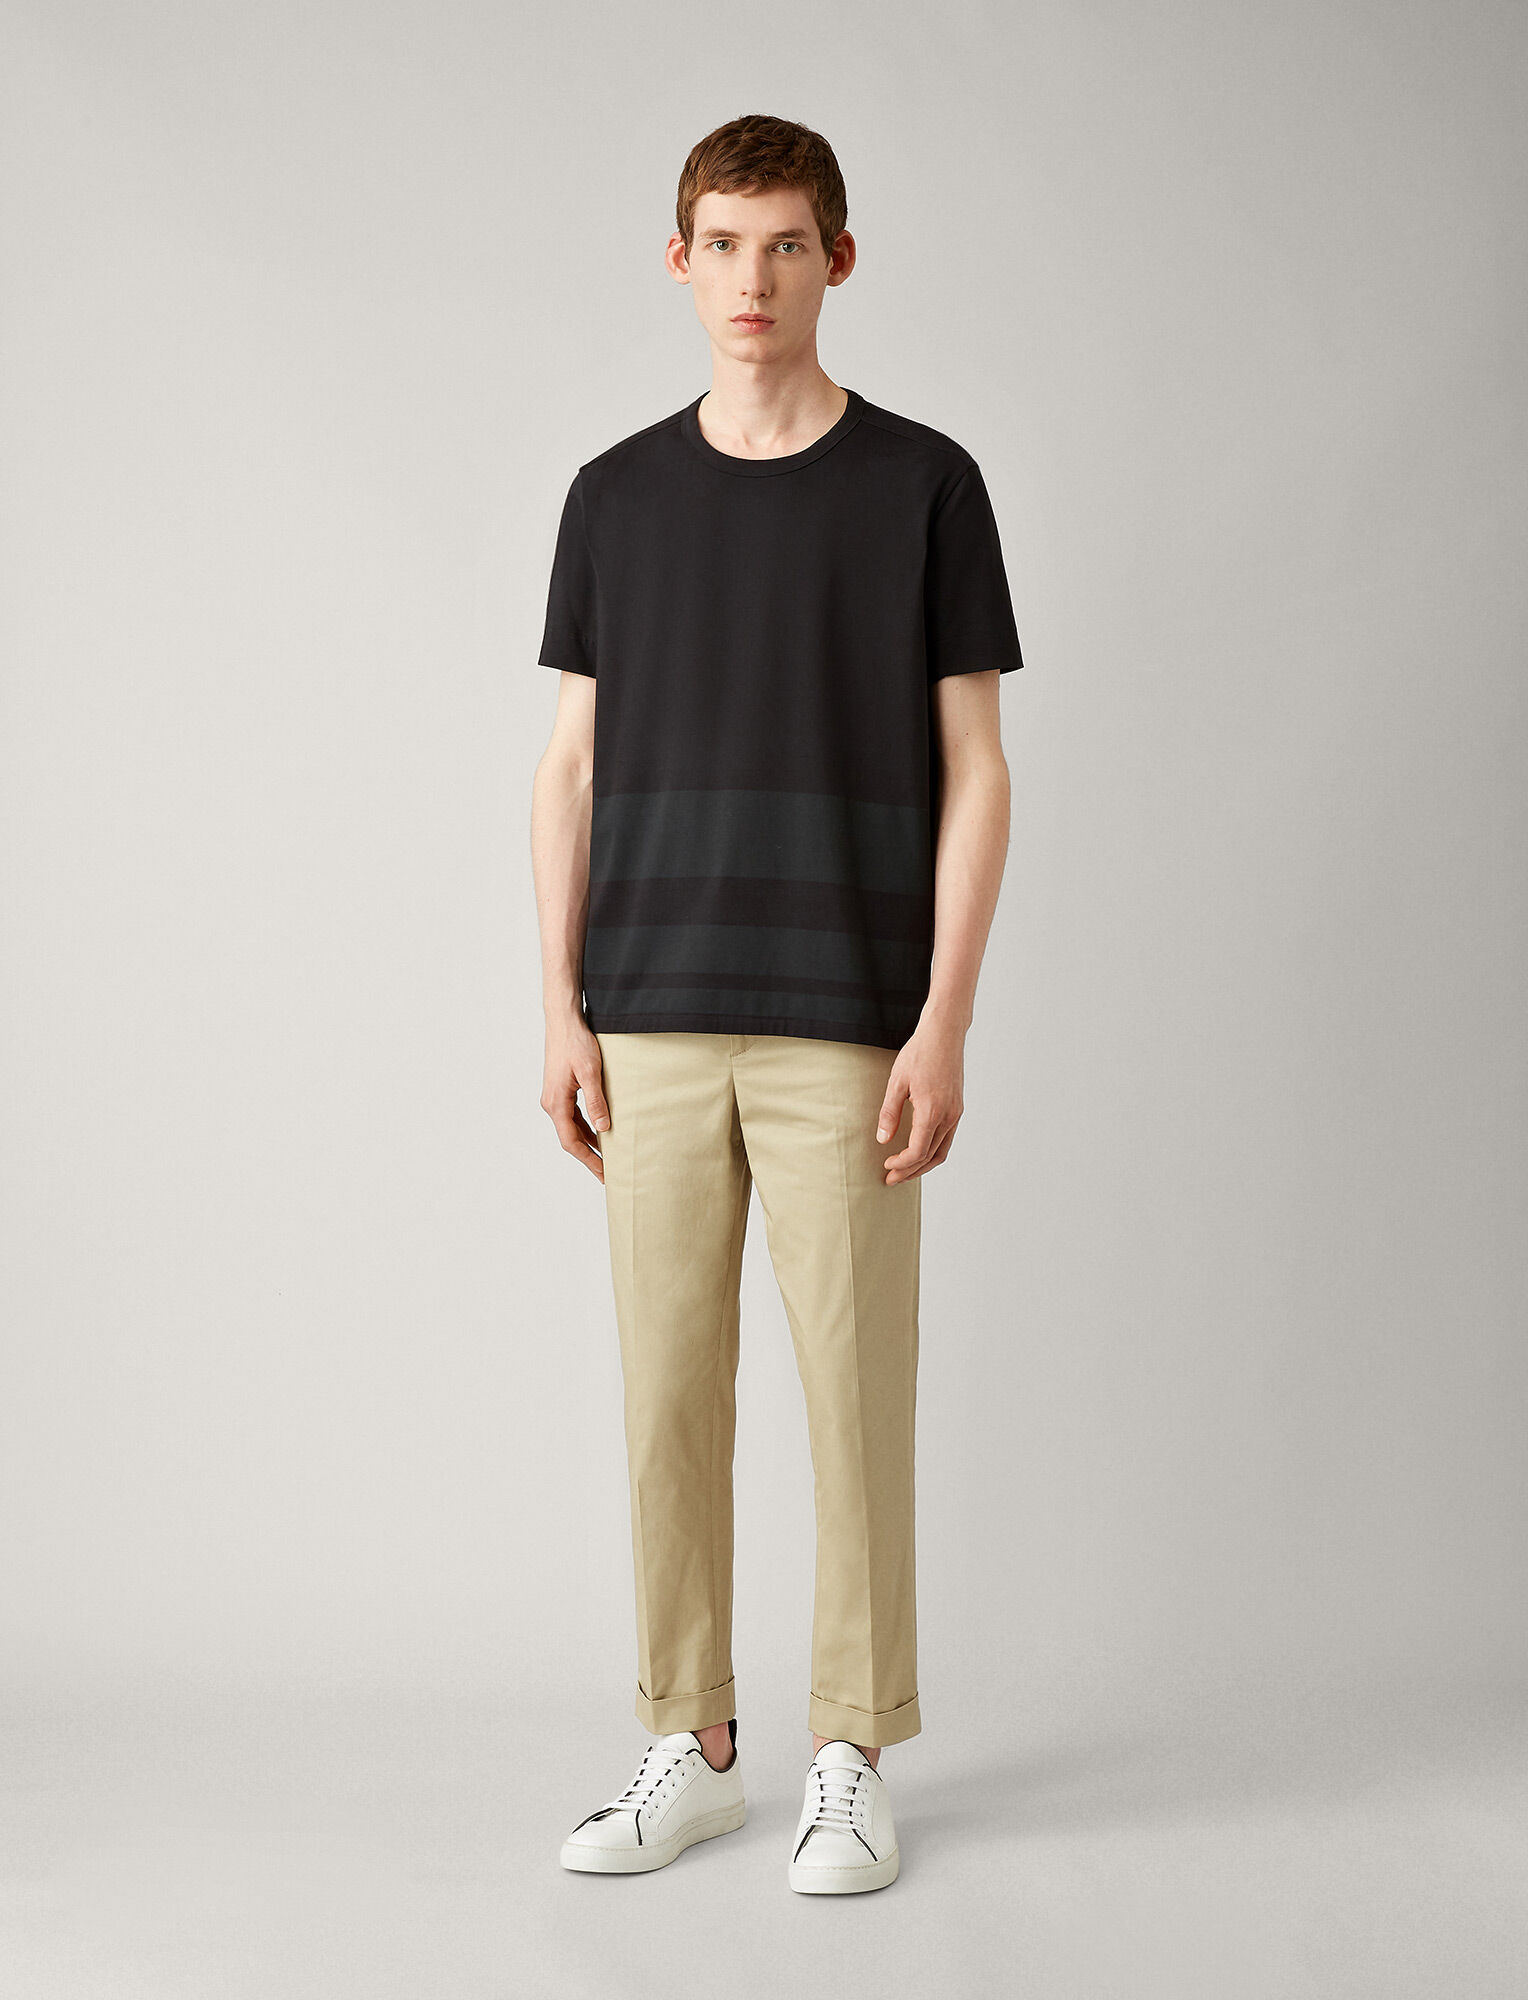 Joseph, Joseph Stripe Tee, in BLACK